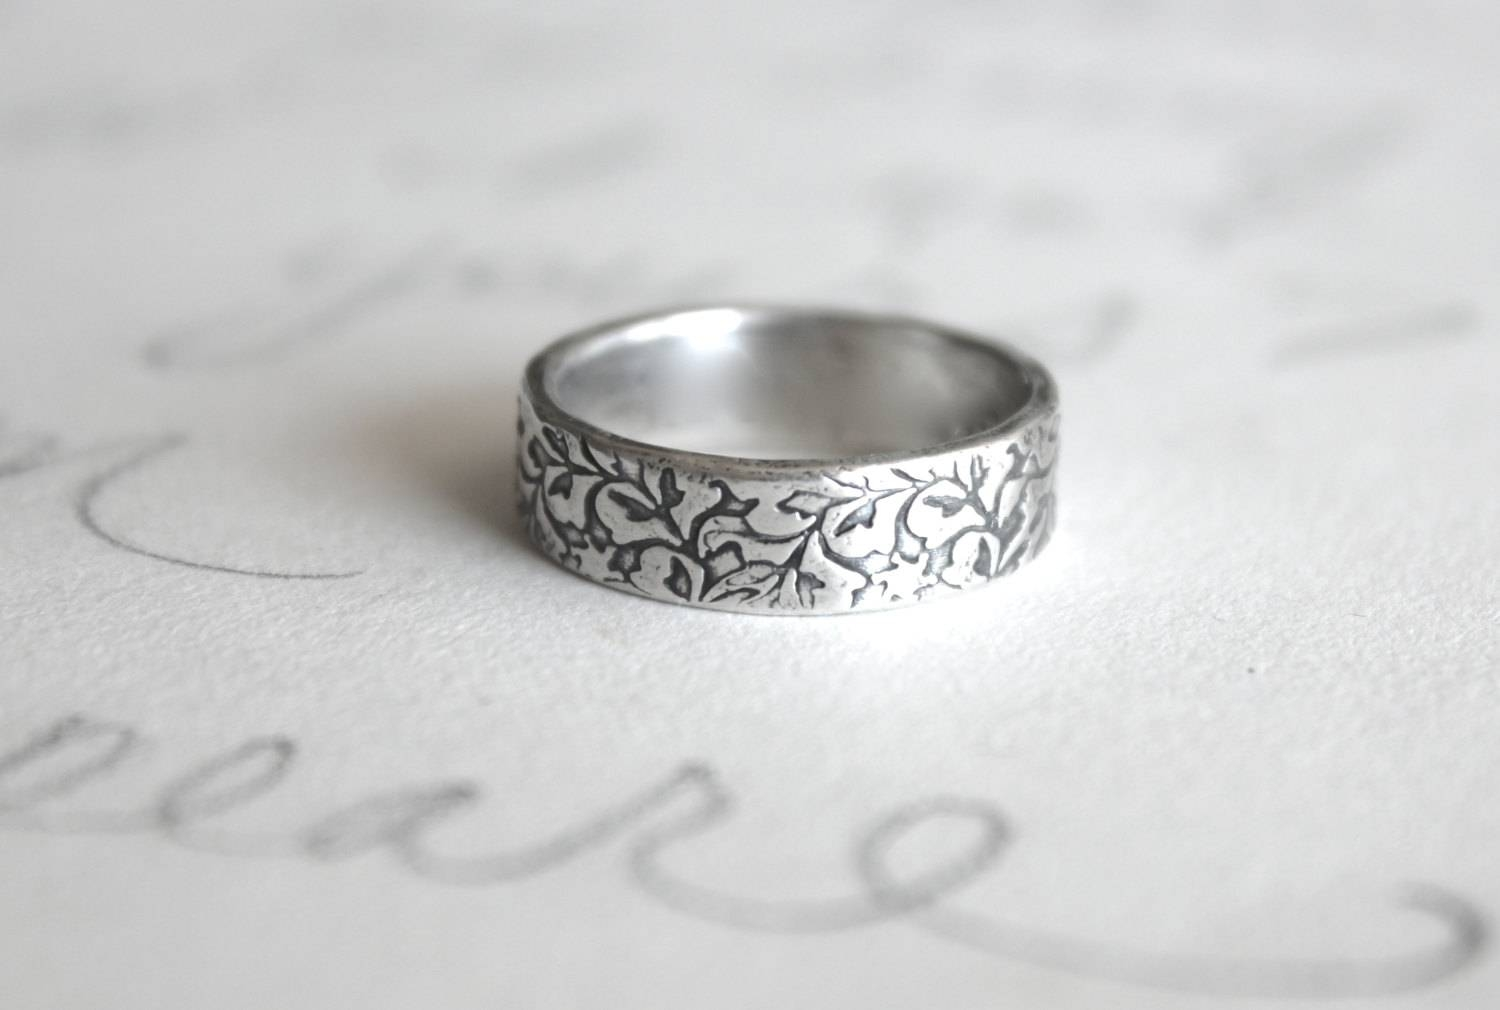 Unisex Wedding Band Ring . Engraved Recycled Silver Ring . With Regard To Engraving Mens Wedding Bands (Gallery 15 of 15)